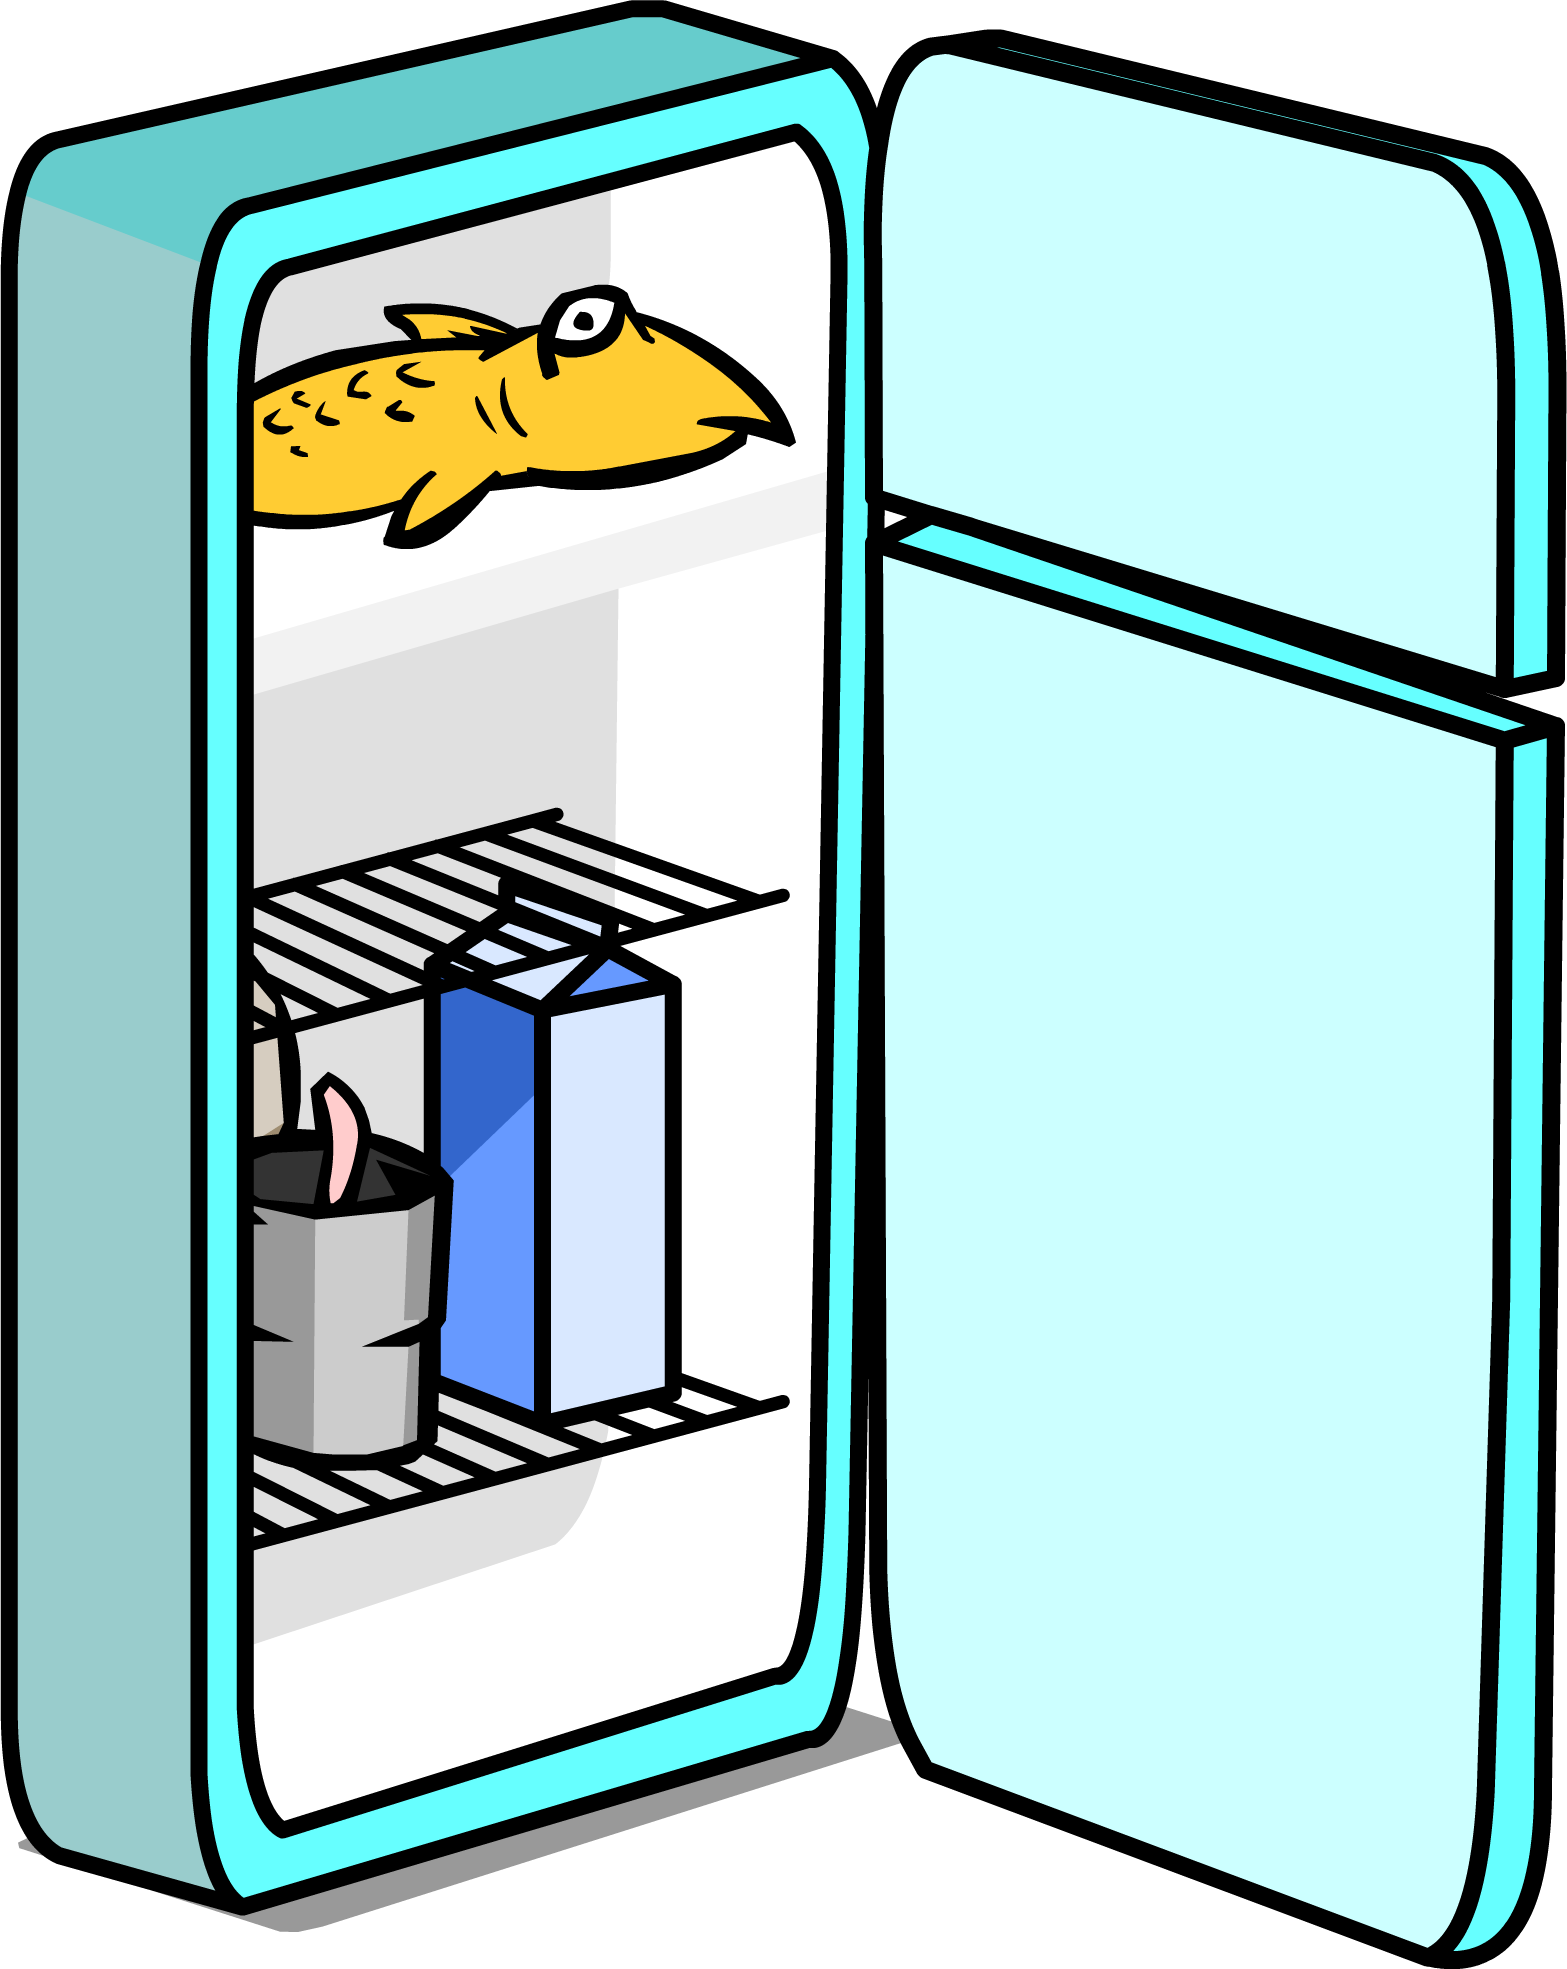 Fridge clipart labeled. At getdrawings com free